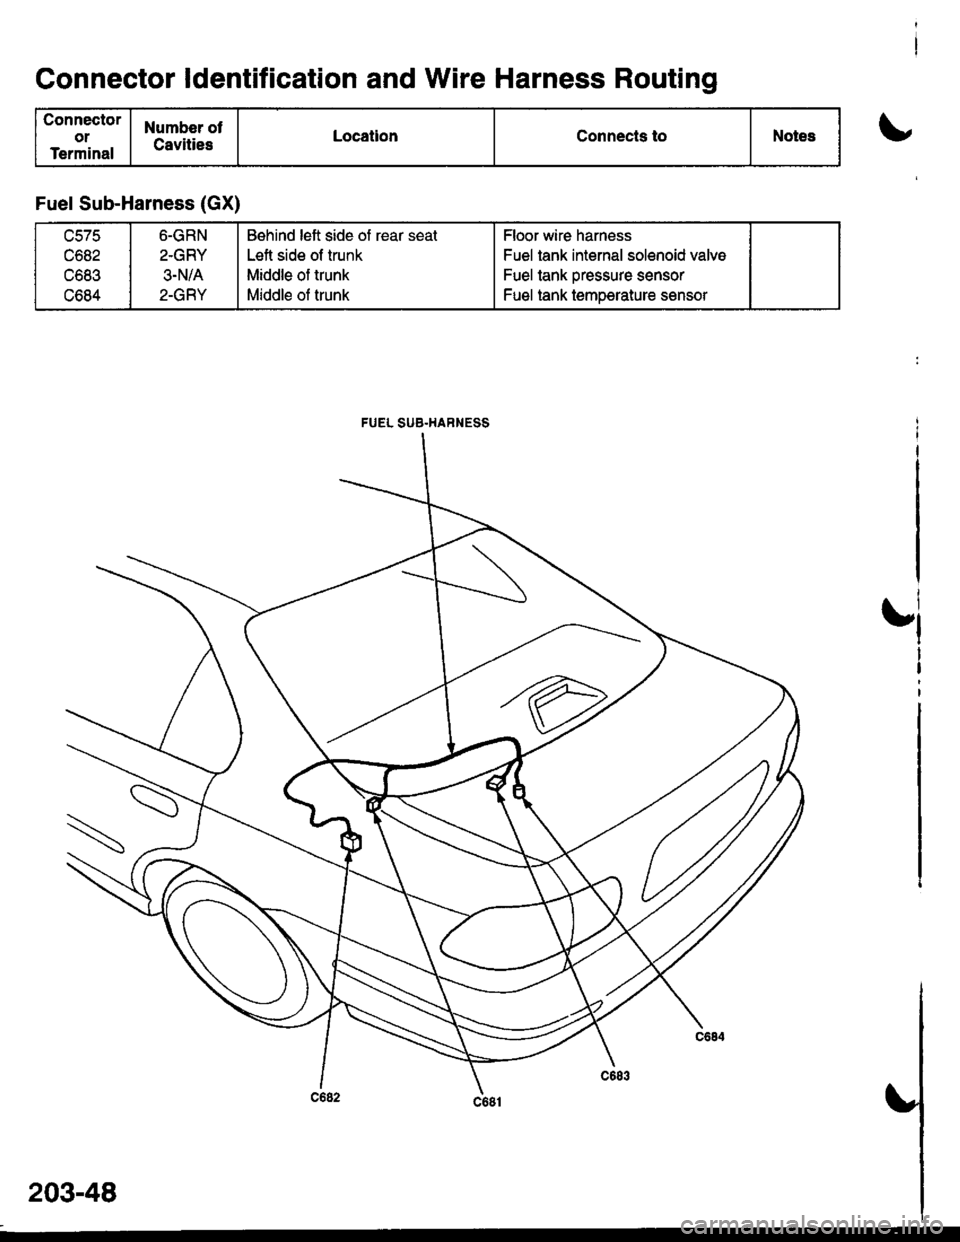 Honda Civic 1997 6g Workshop Manual Wiring Harness Routing And Design Page 2189 Connector Ldentification Wire